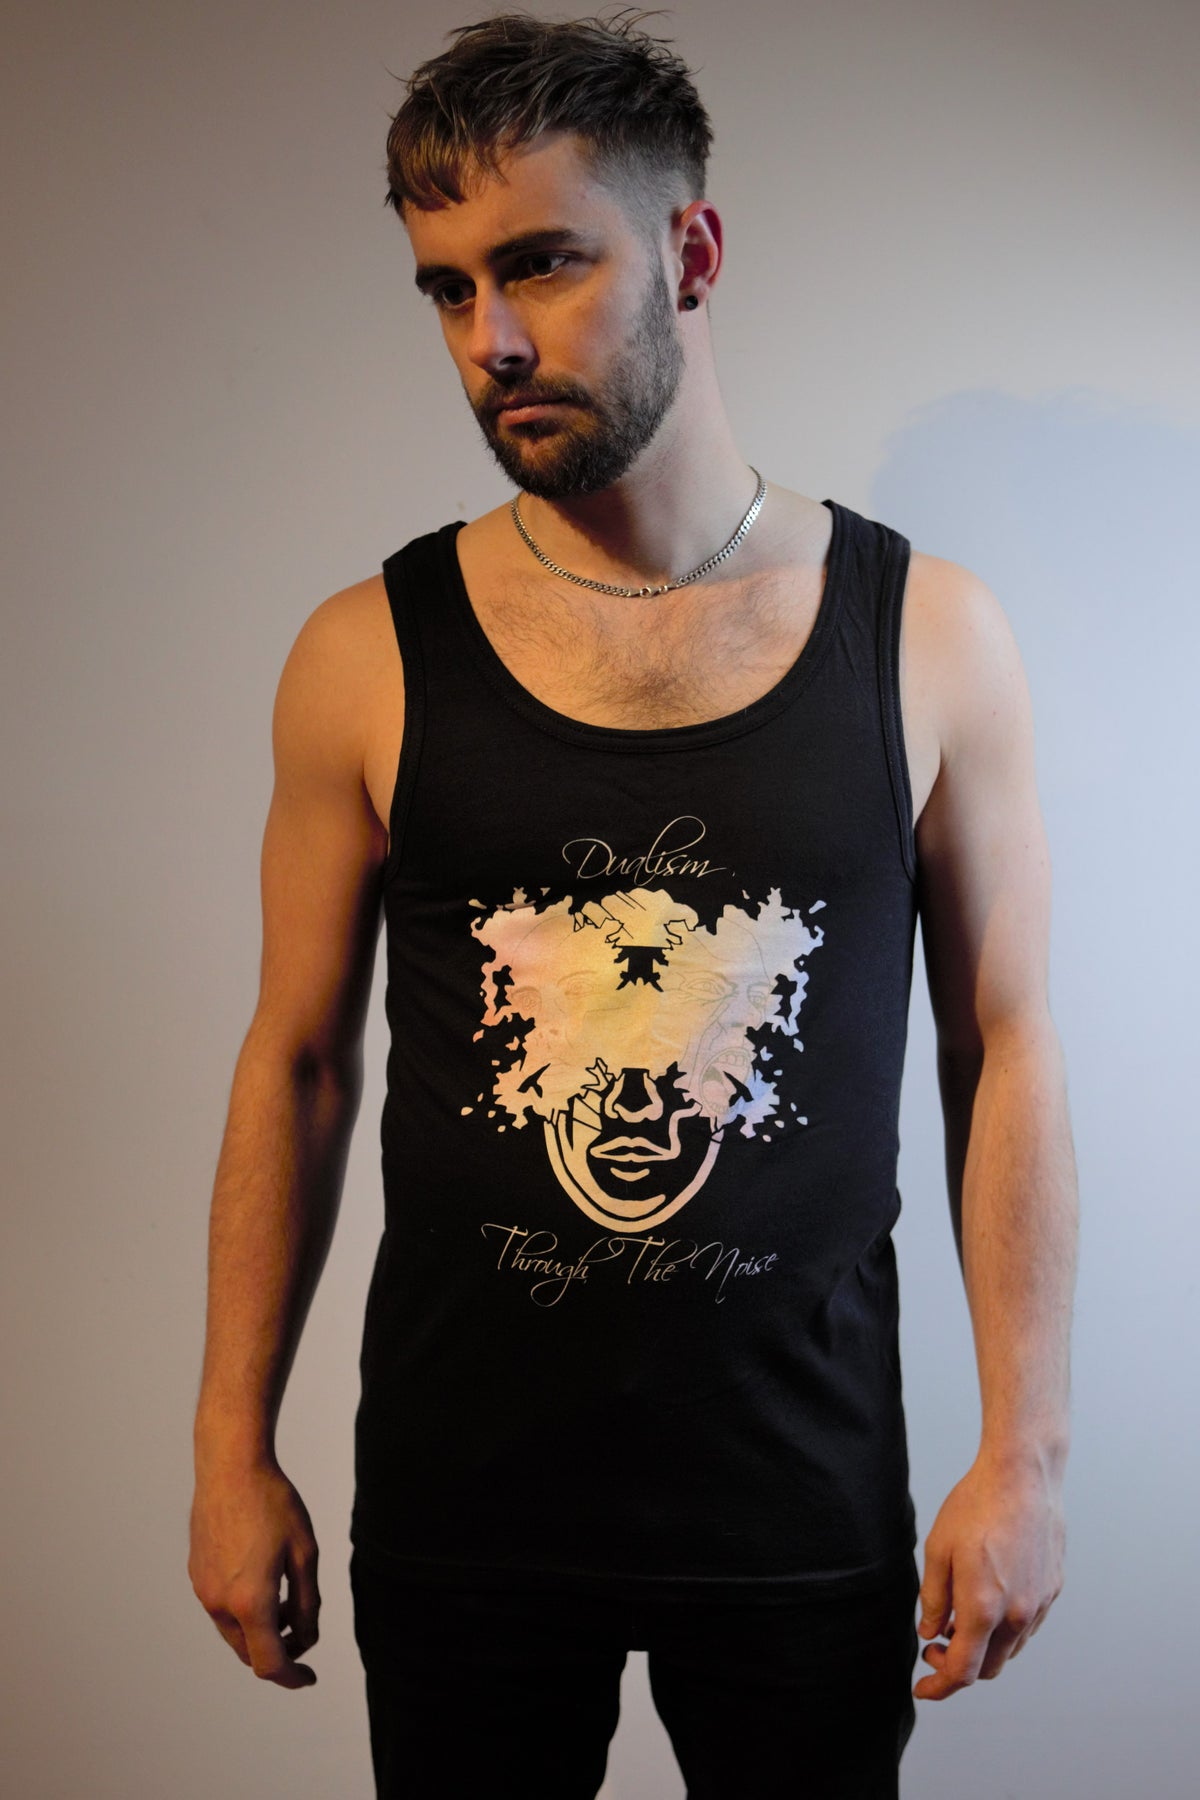 Image of Through The Noise - Dualism Tank top